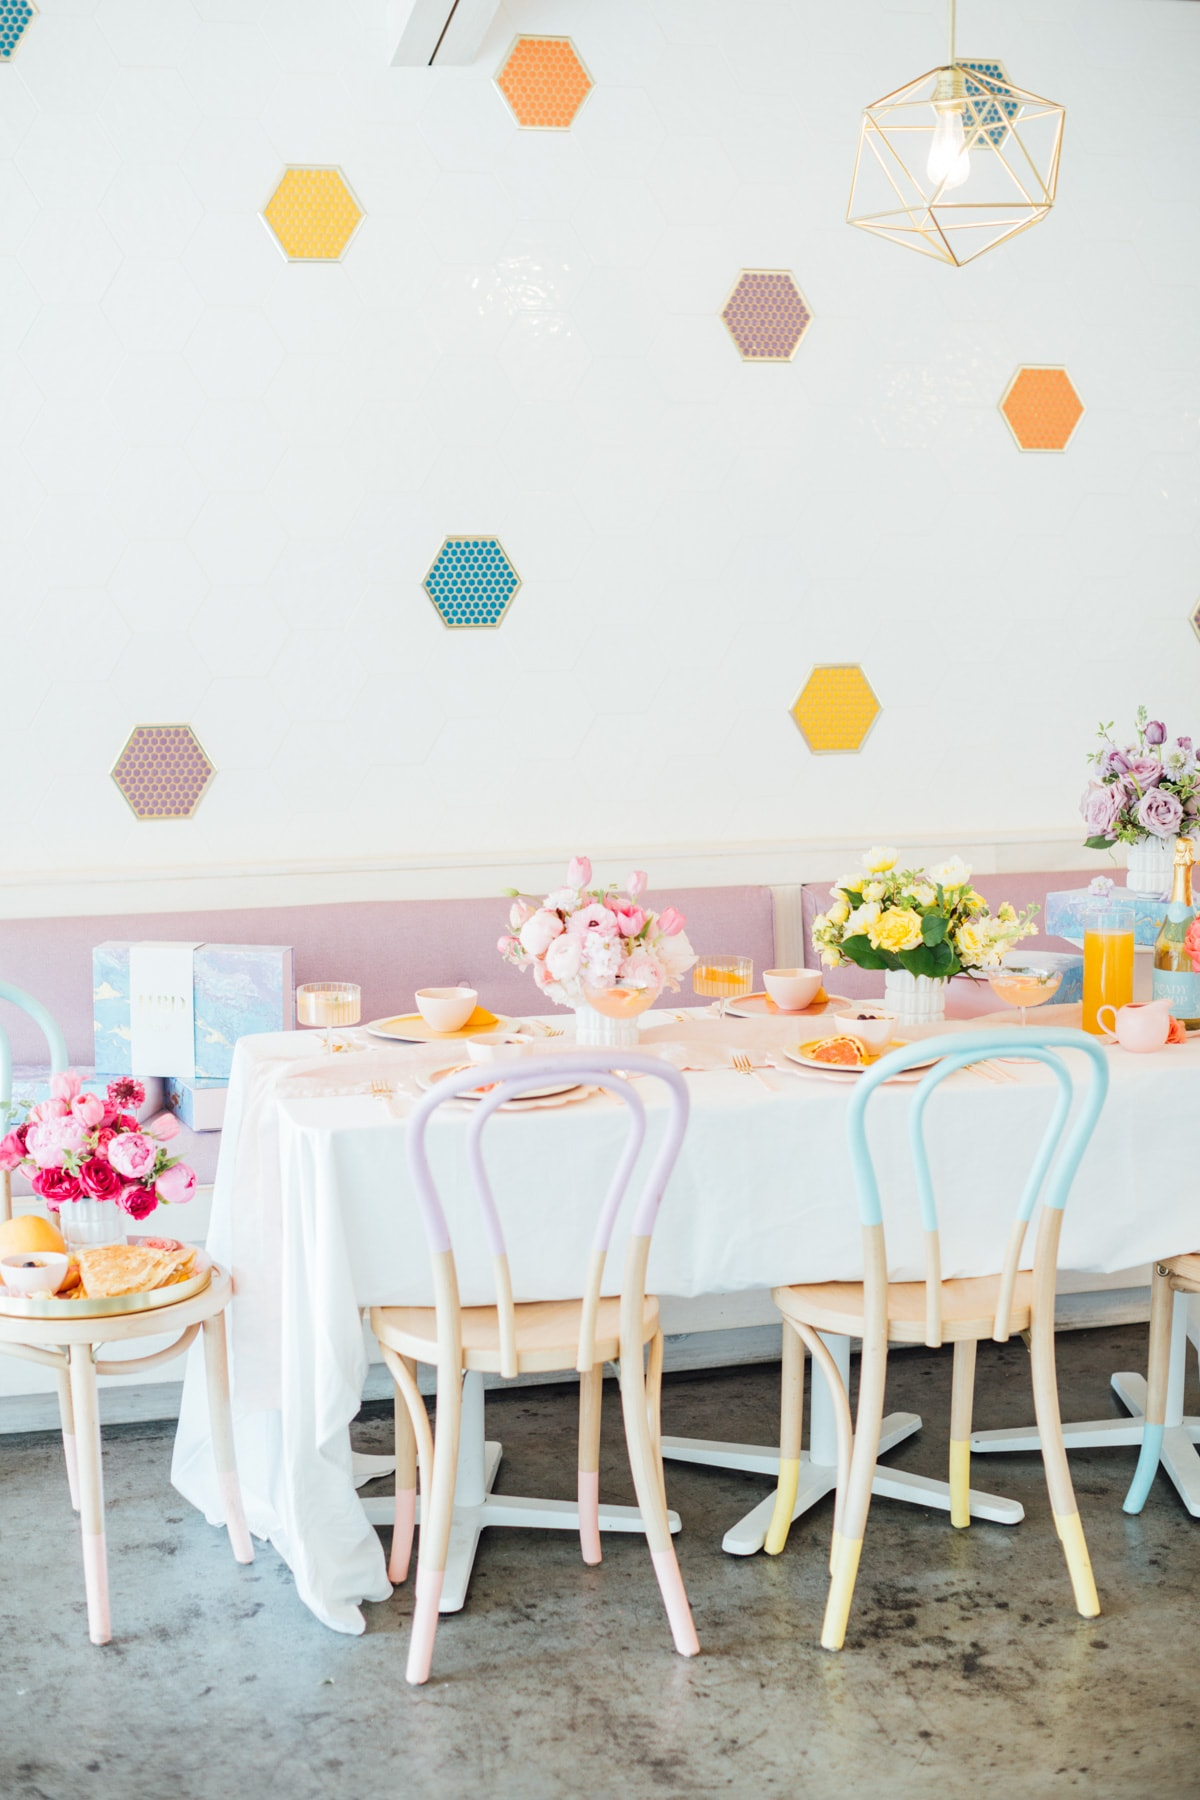 Melange Creperie Houston brunch ideas - A Perfectly Pastel Easter Table Idea by top Houston lifestyle blogger Ashley Rose of Sugar & Cloth #diy #tablescape #ideas #easter #pastel #party #decorations #brunch #bridalshower #bridal #shower #baby